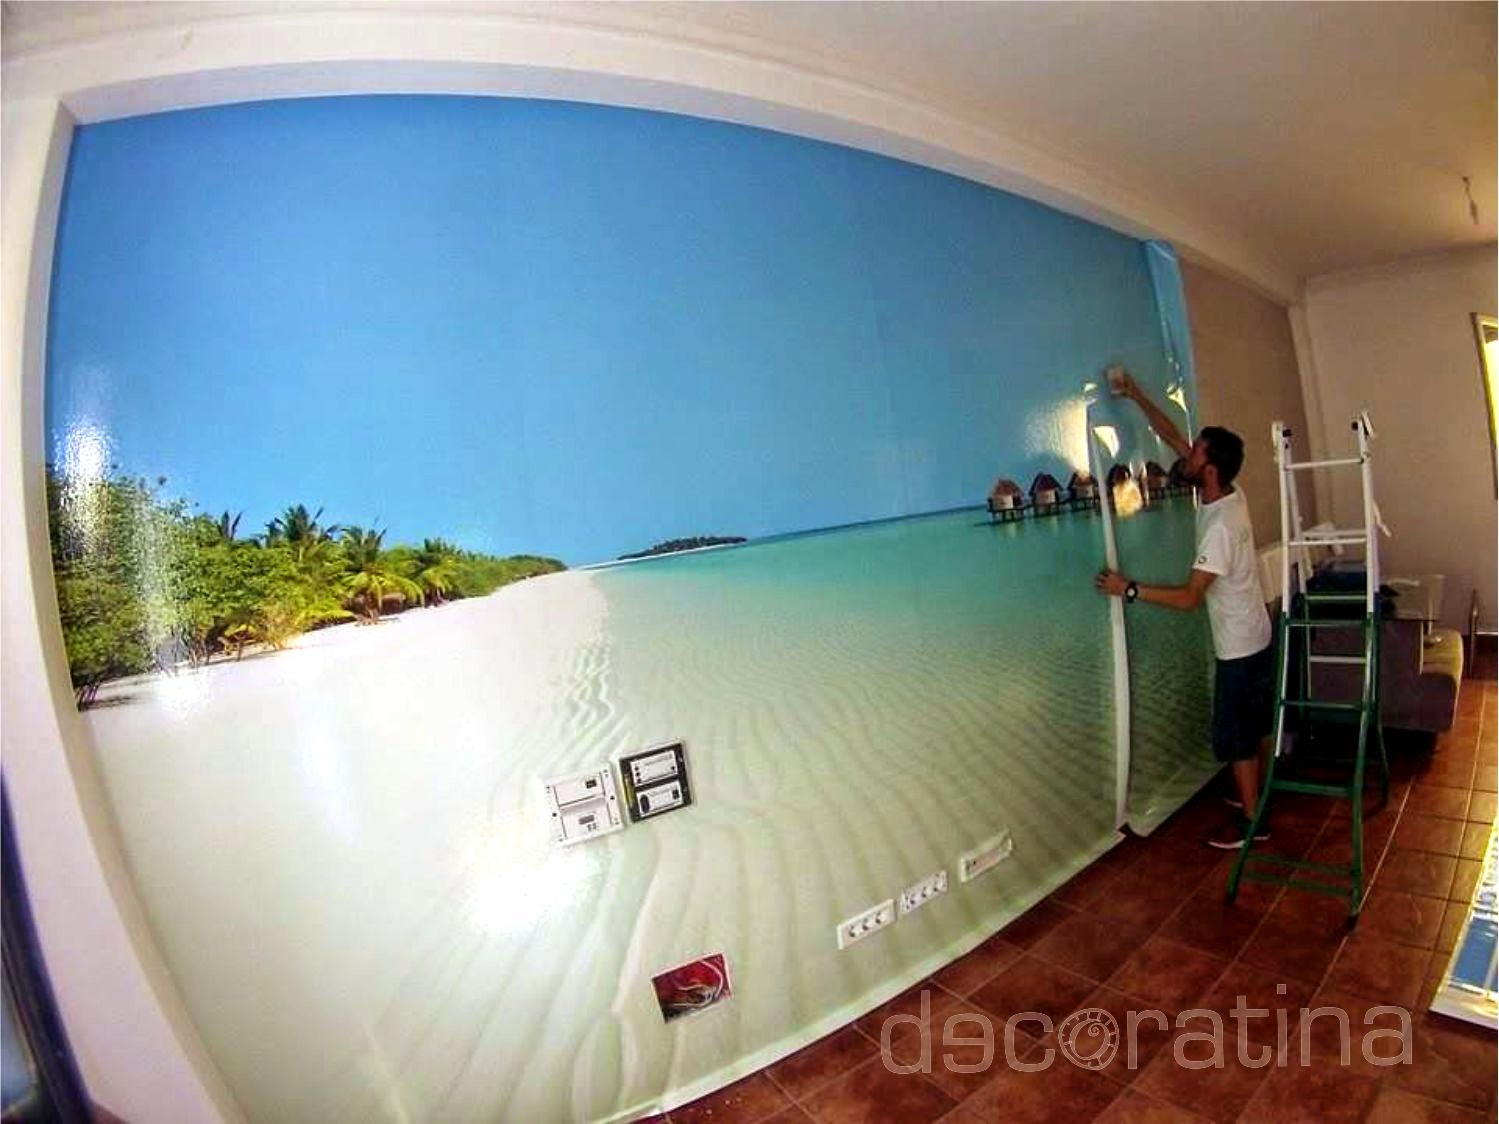 Decoratina vinilos decorativos en las palmas foto mural pared for Vinilos decorativos pared 3d